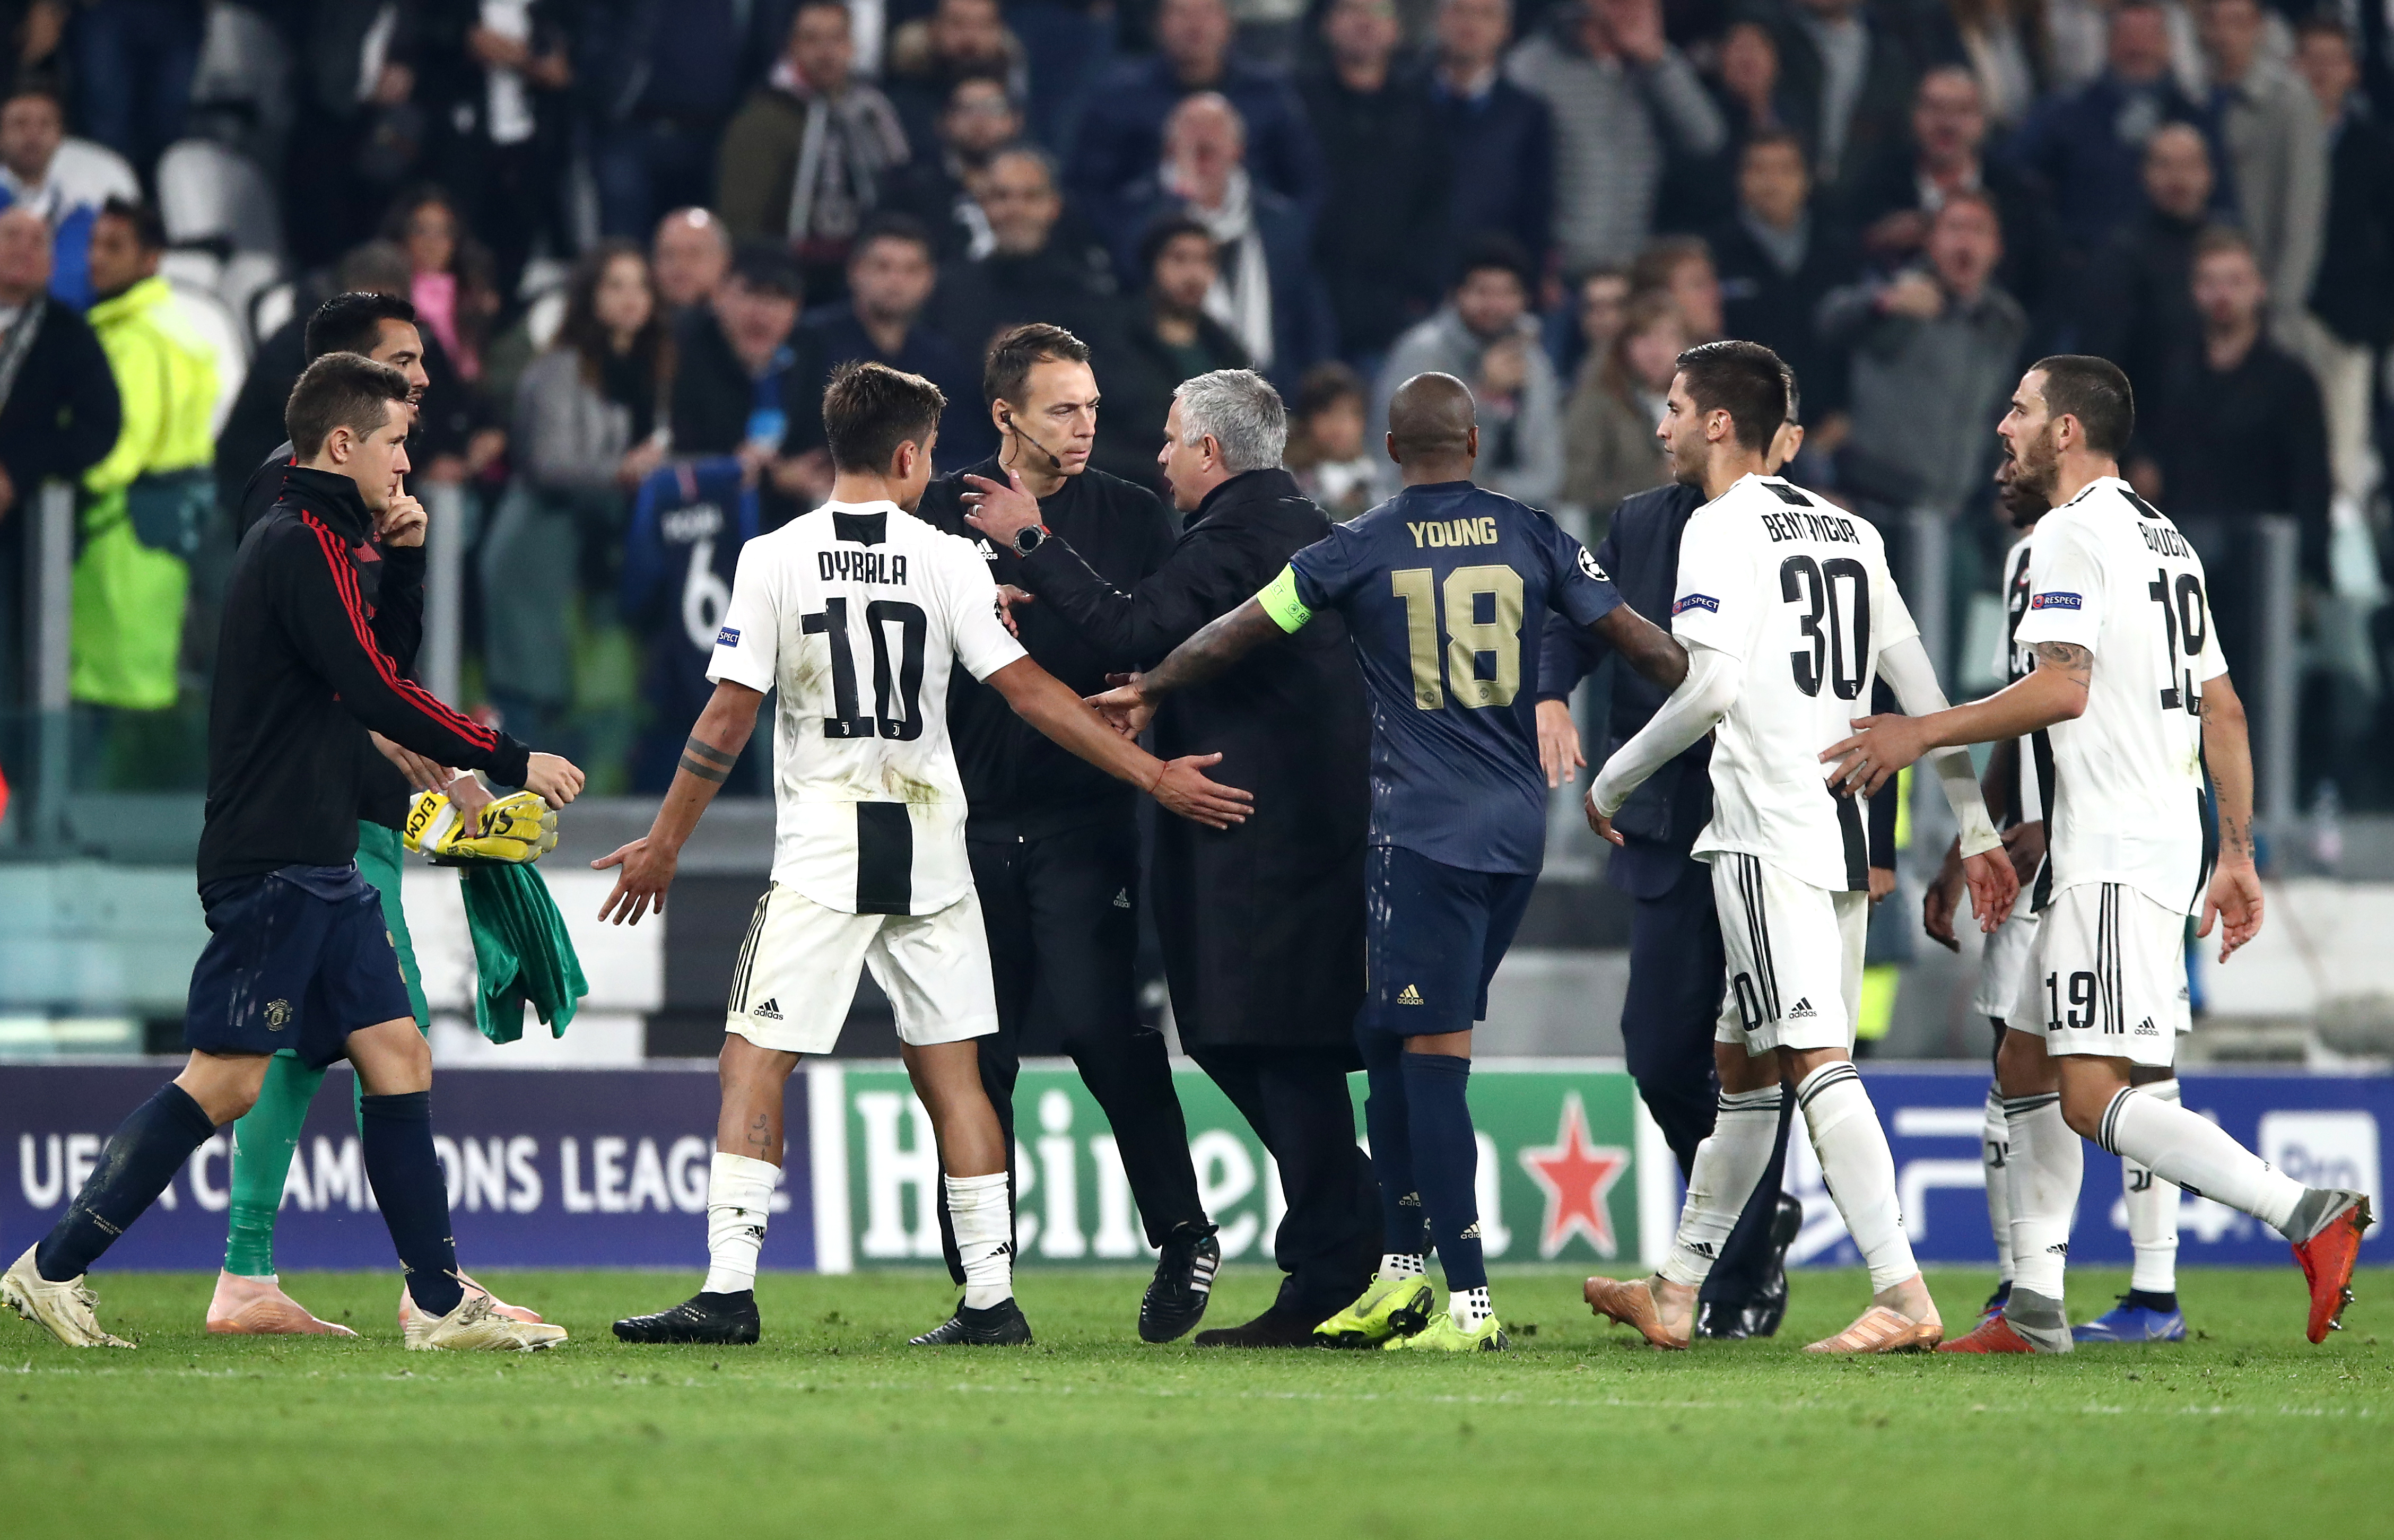 Juventus players surround Mourinho after his final whistle antics. Image: PA Images